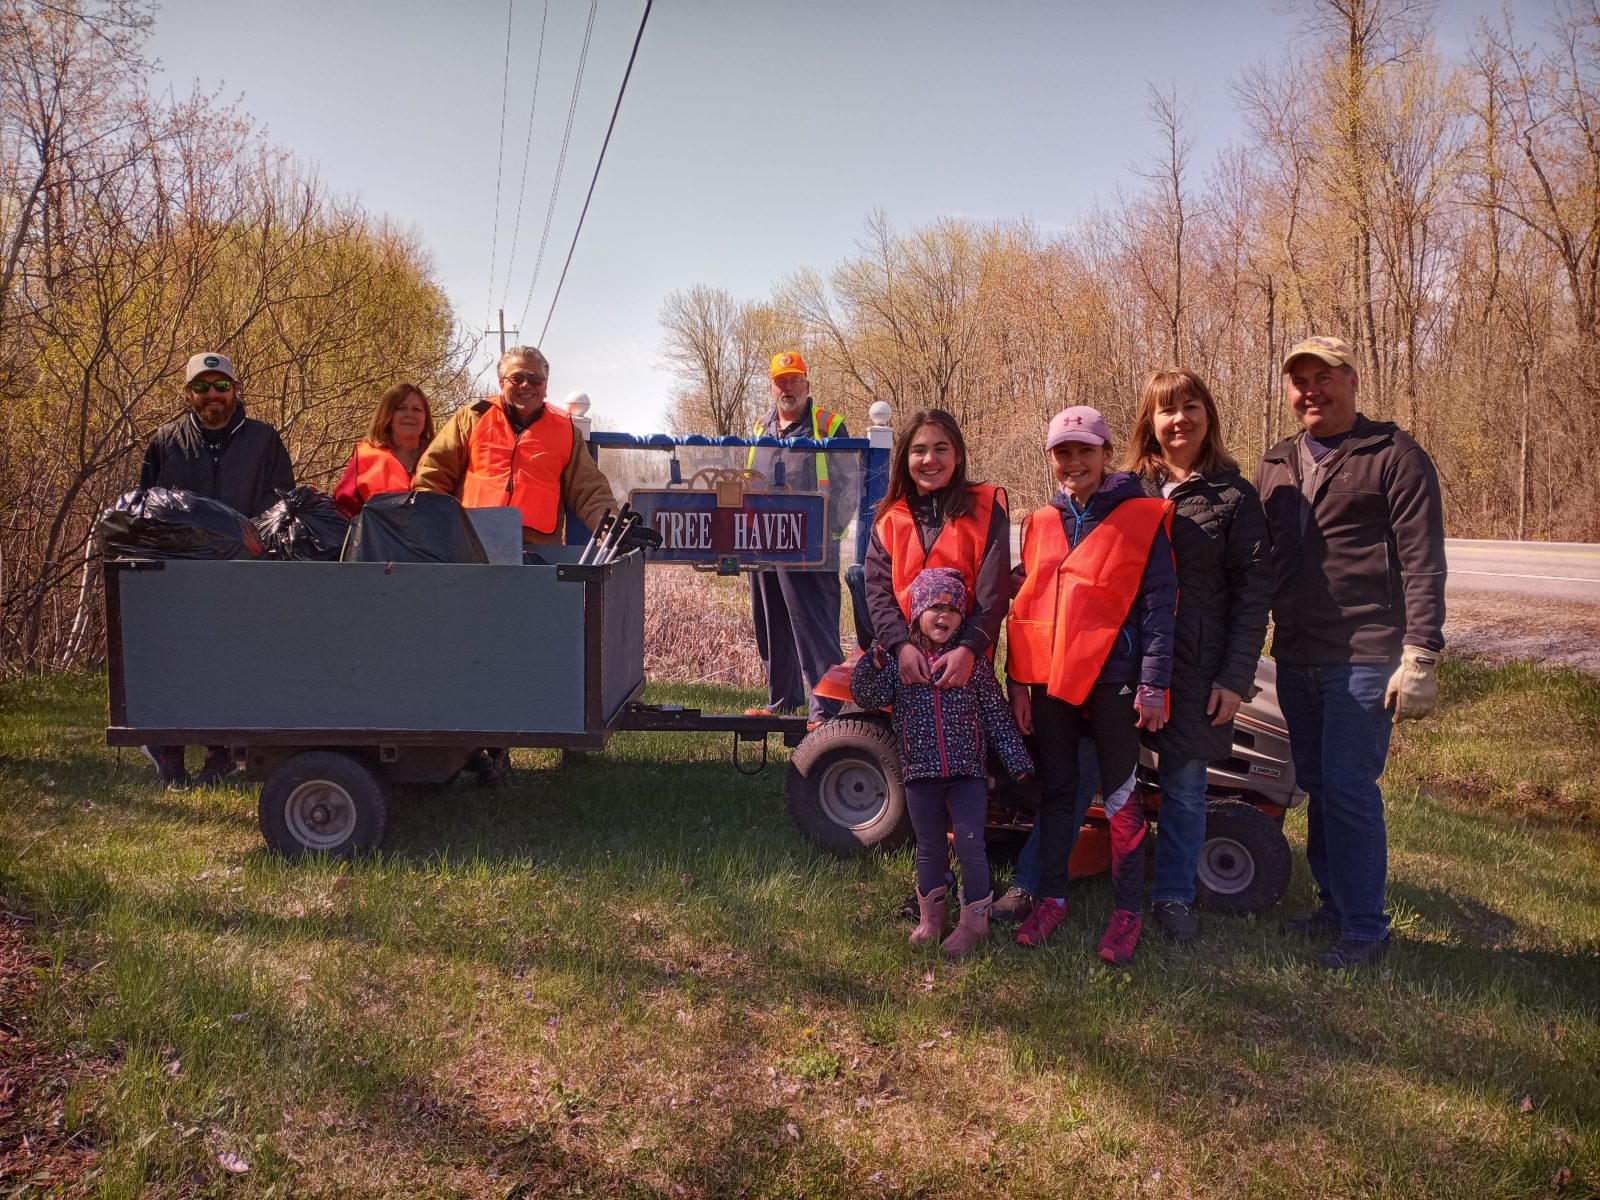 Tree Haven Rd. residents pitch-in to keep community clean